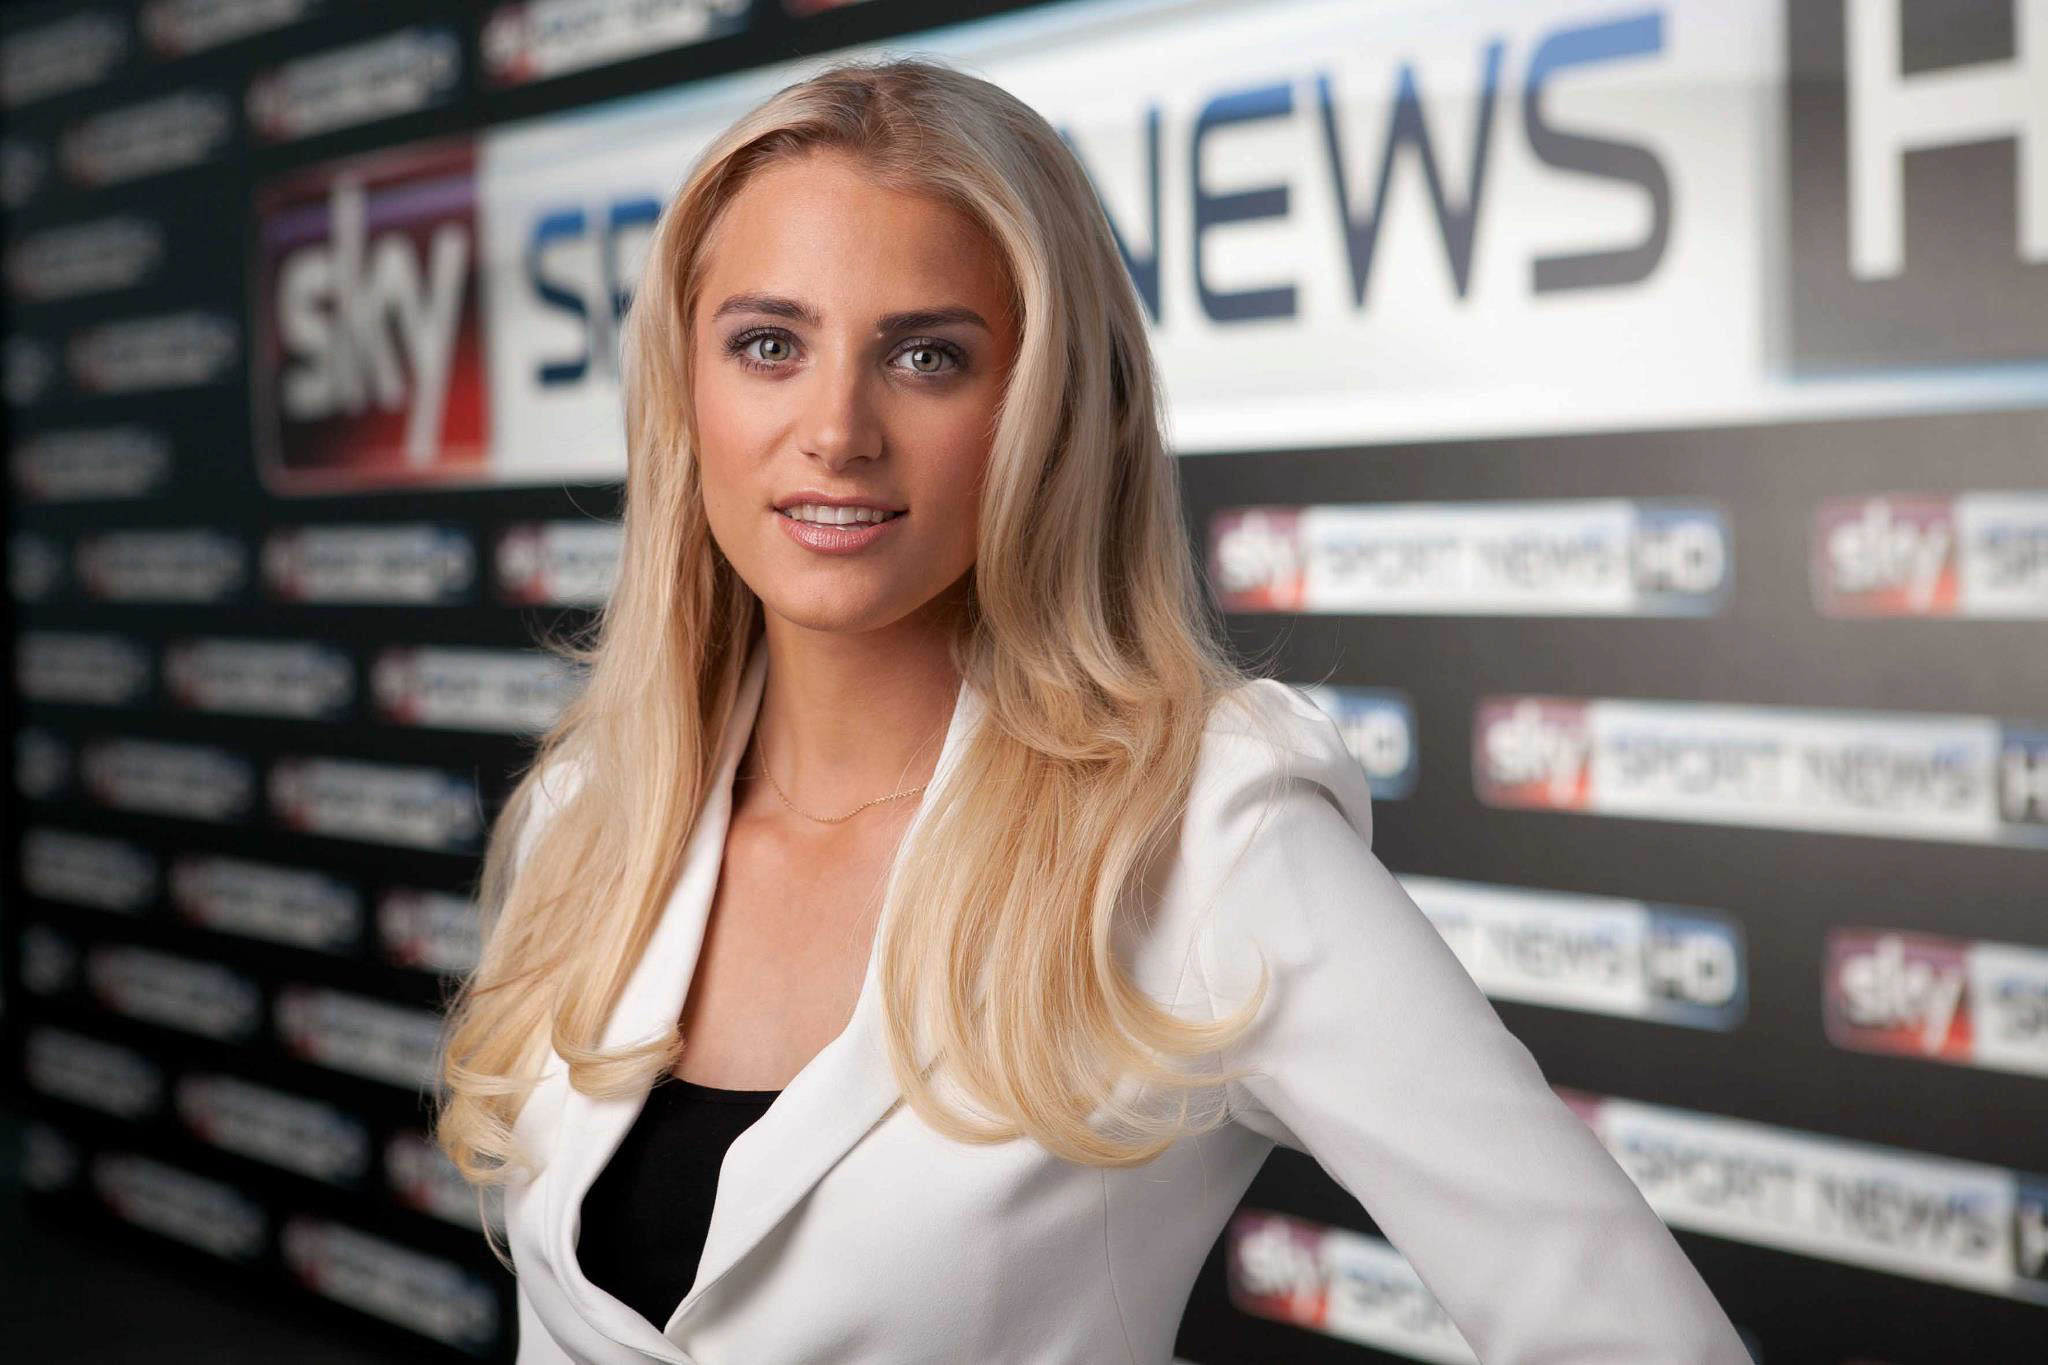 16 anna kraft (sky deutschland germany) - hottest soccer reporters from around the world